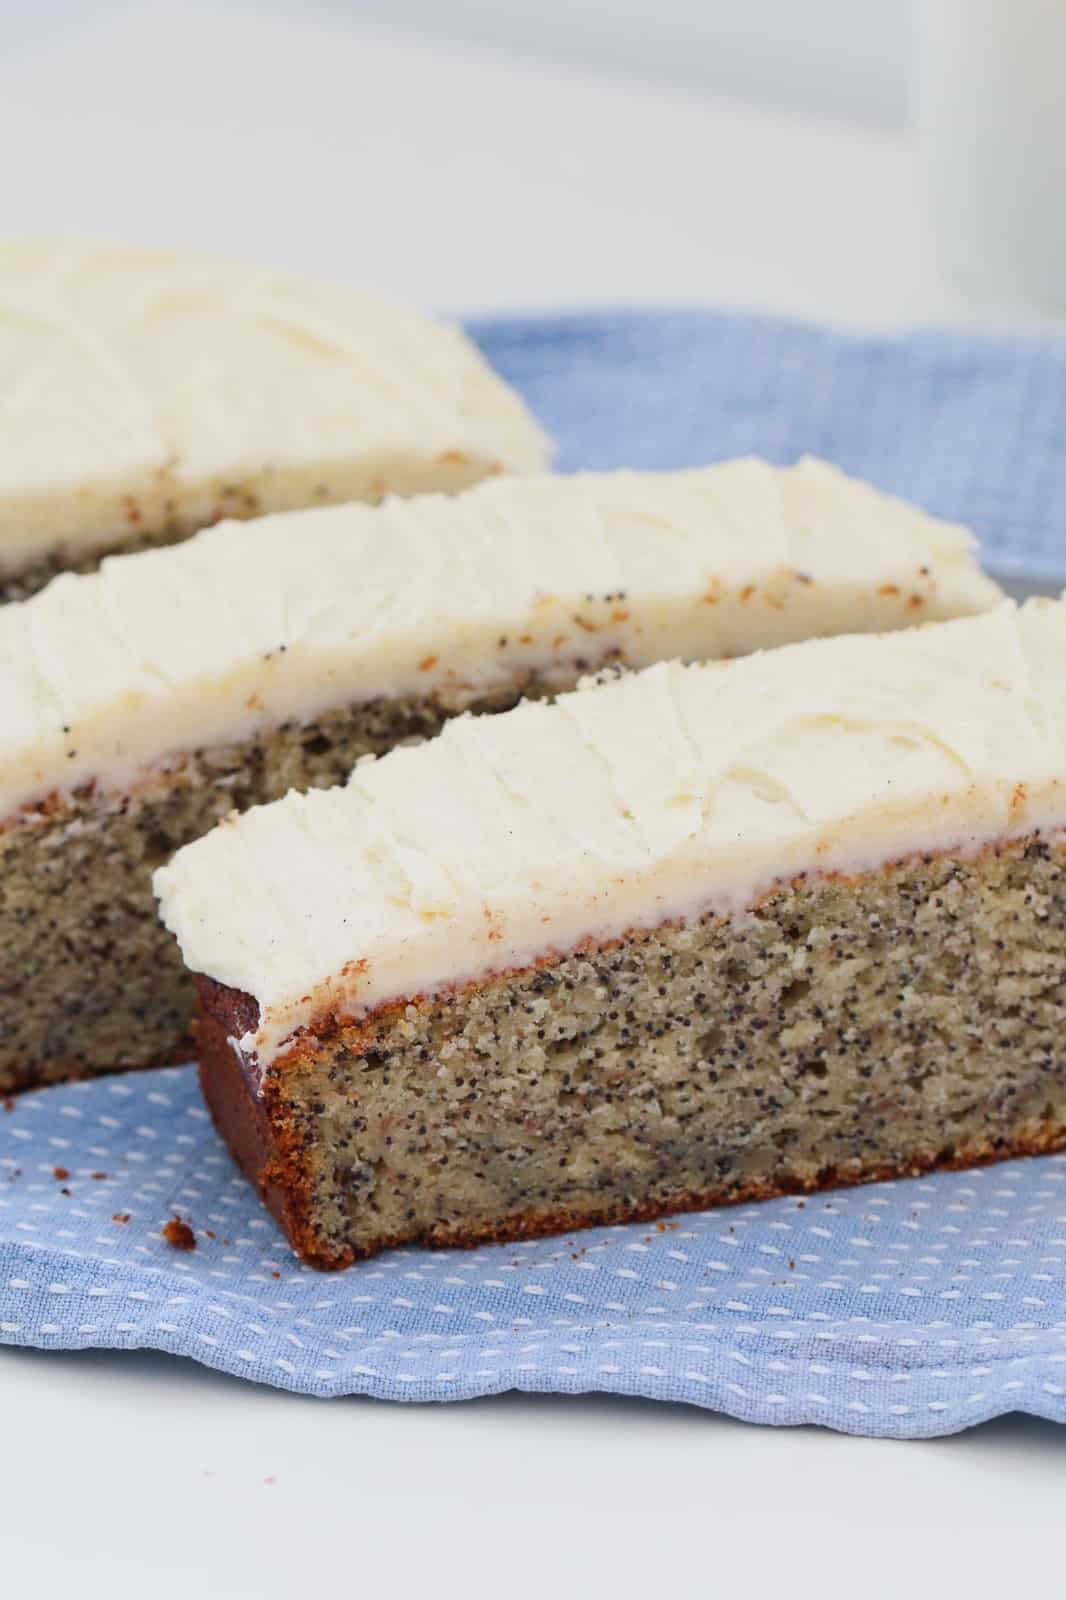 Three long, thick slices of frosted poppyseed cake on a blue and white tea towel on a white counter top..